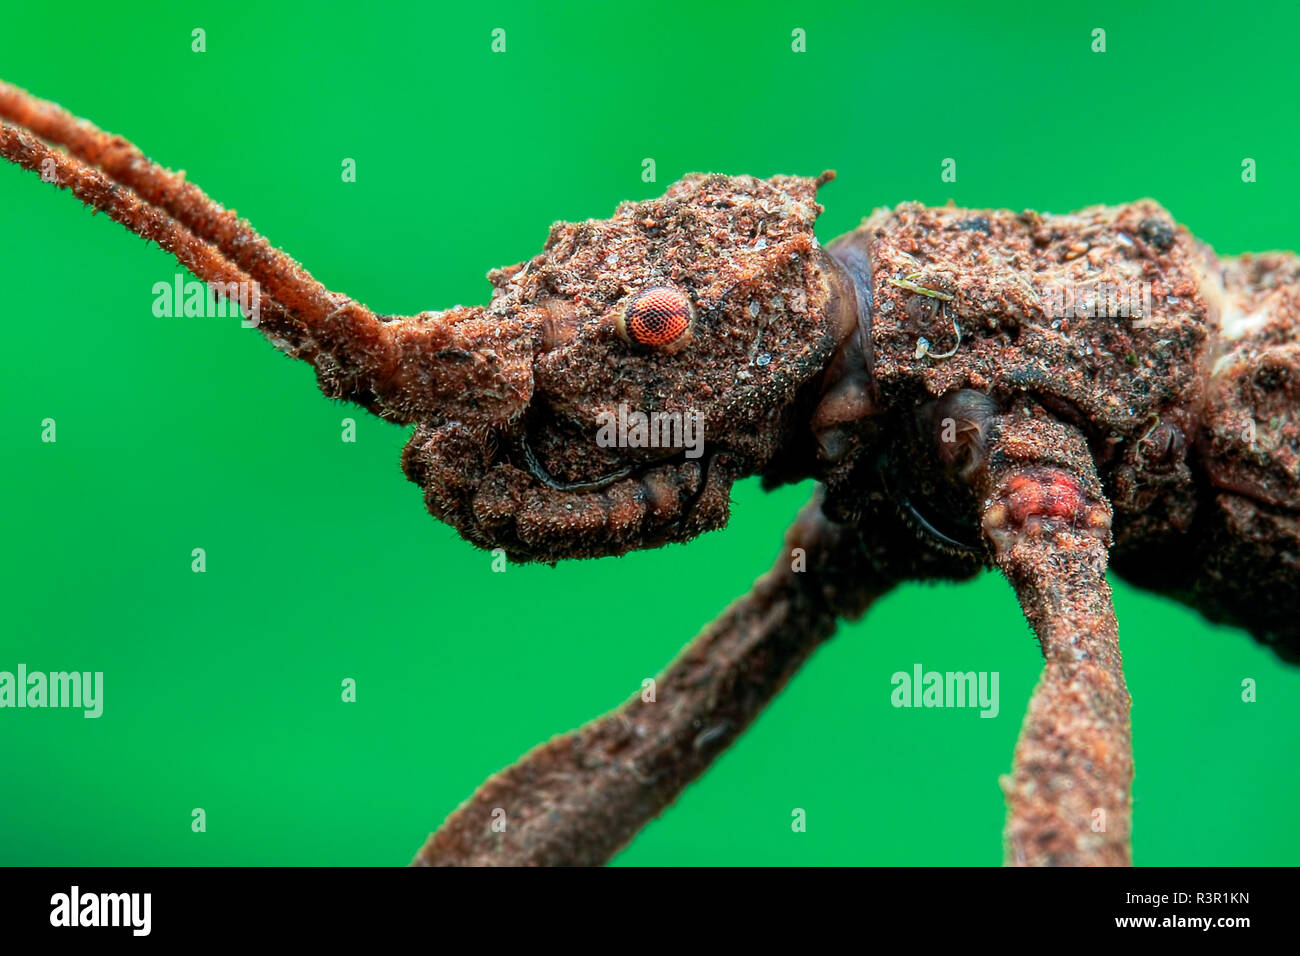 Low angle face shot of a stick insect (Phasmatodea). - Stock Image